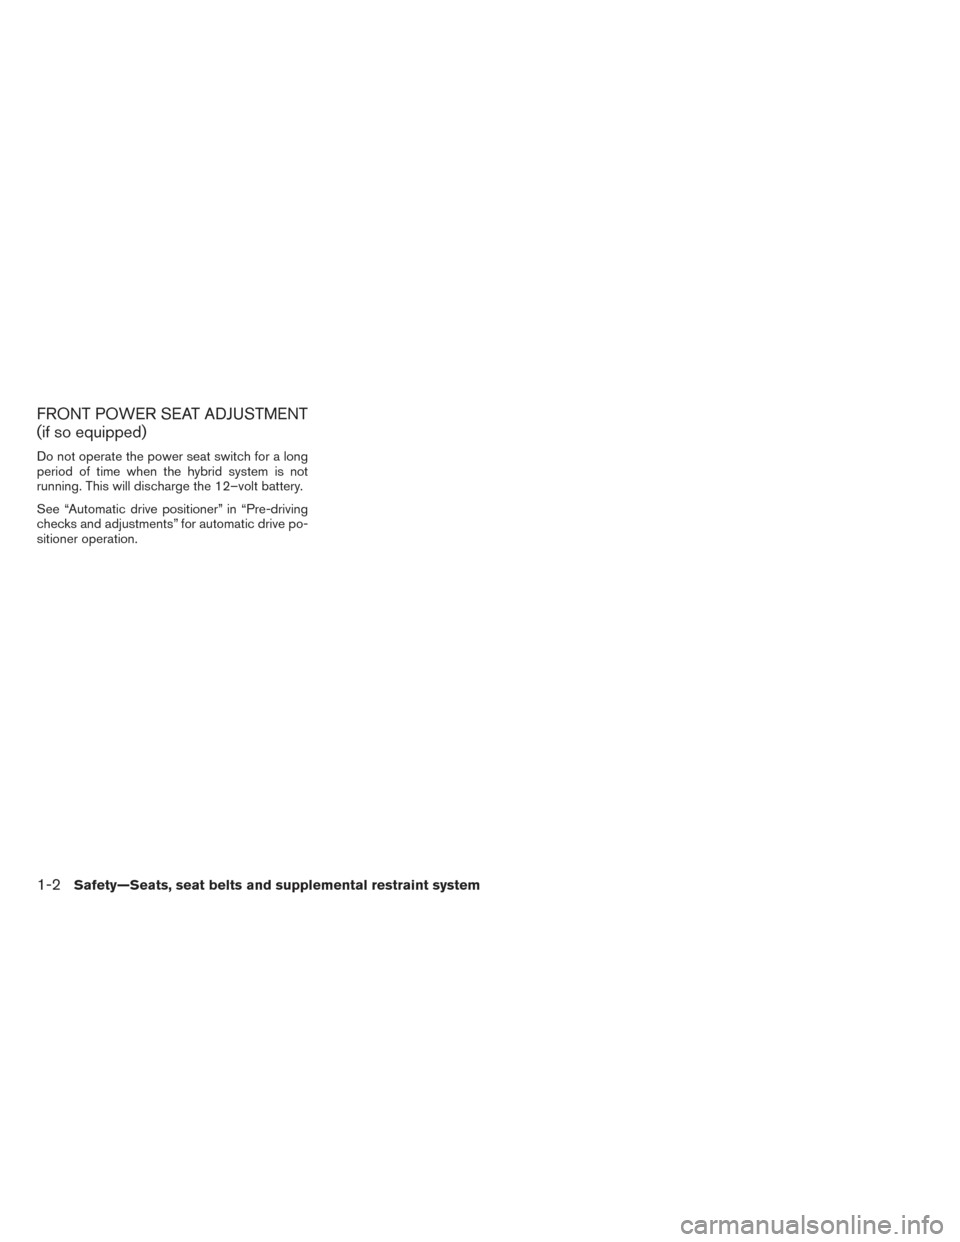 NISSAN PATHFINDER HYBRID 2014 R52 / 4.G Owners Manual, Page 27